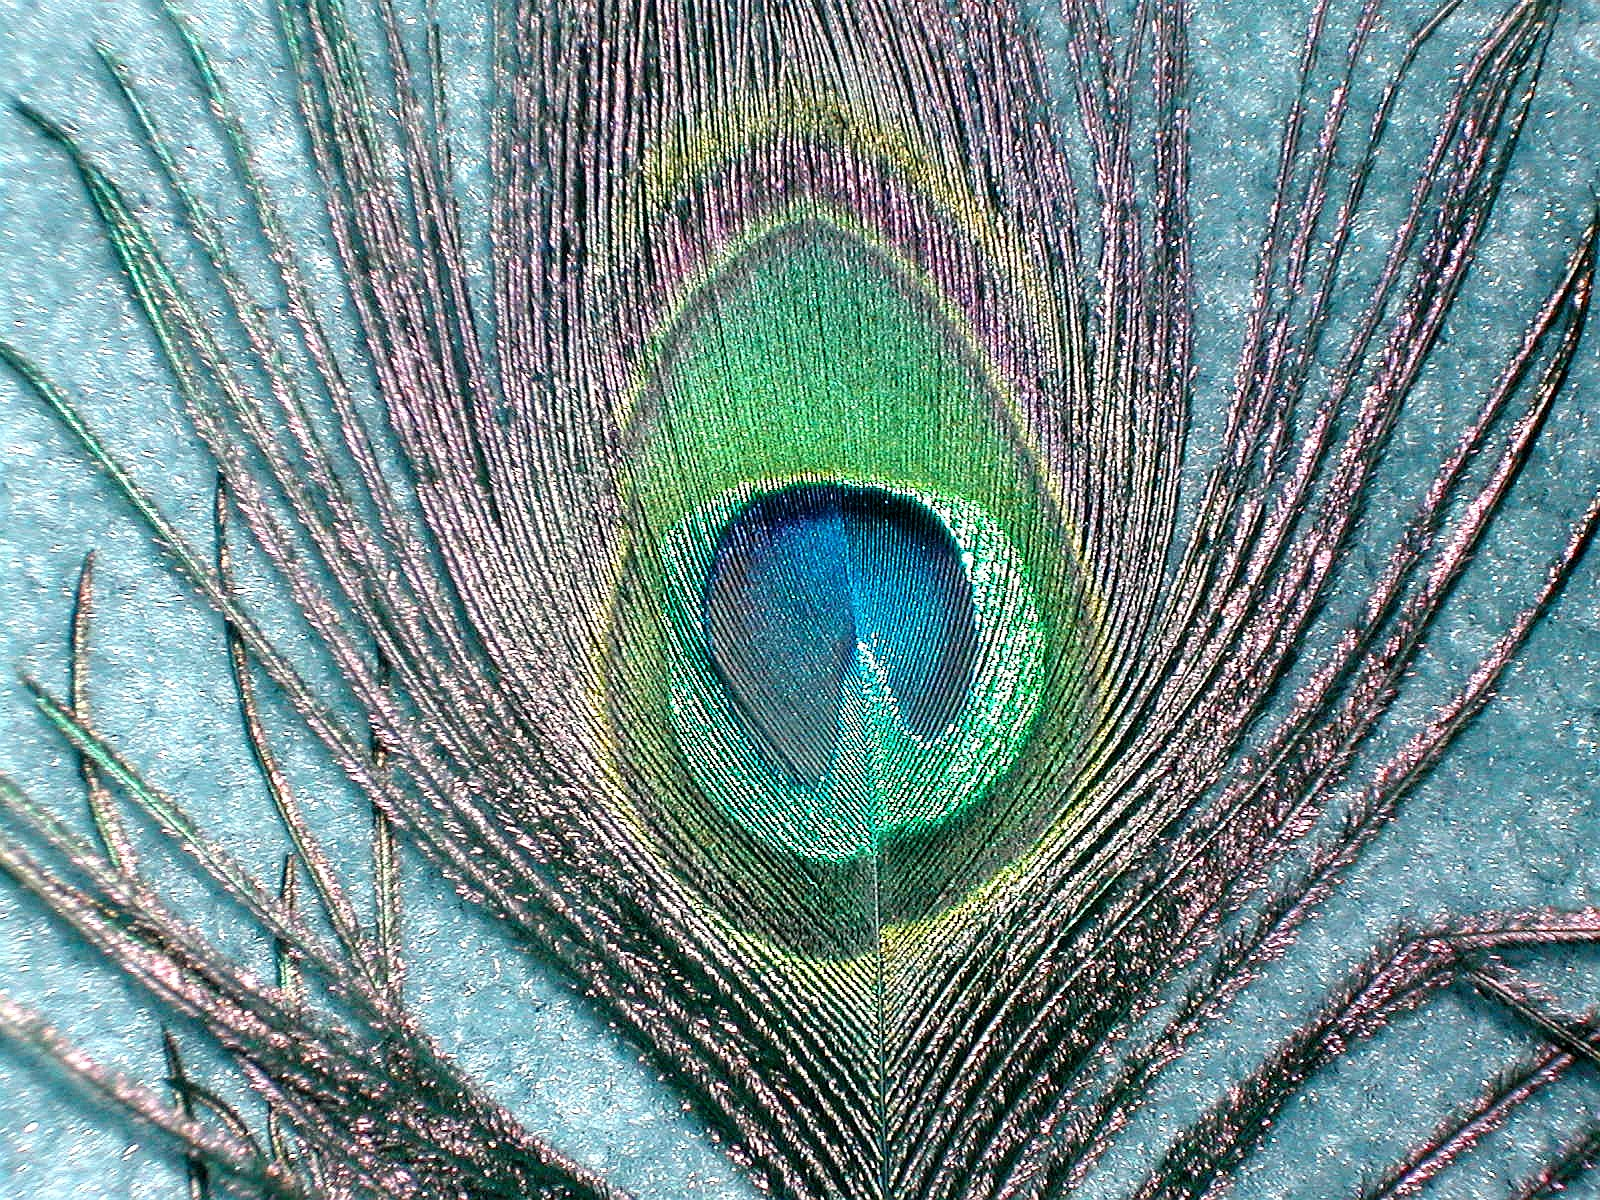 Single peacock feathers